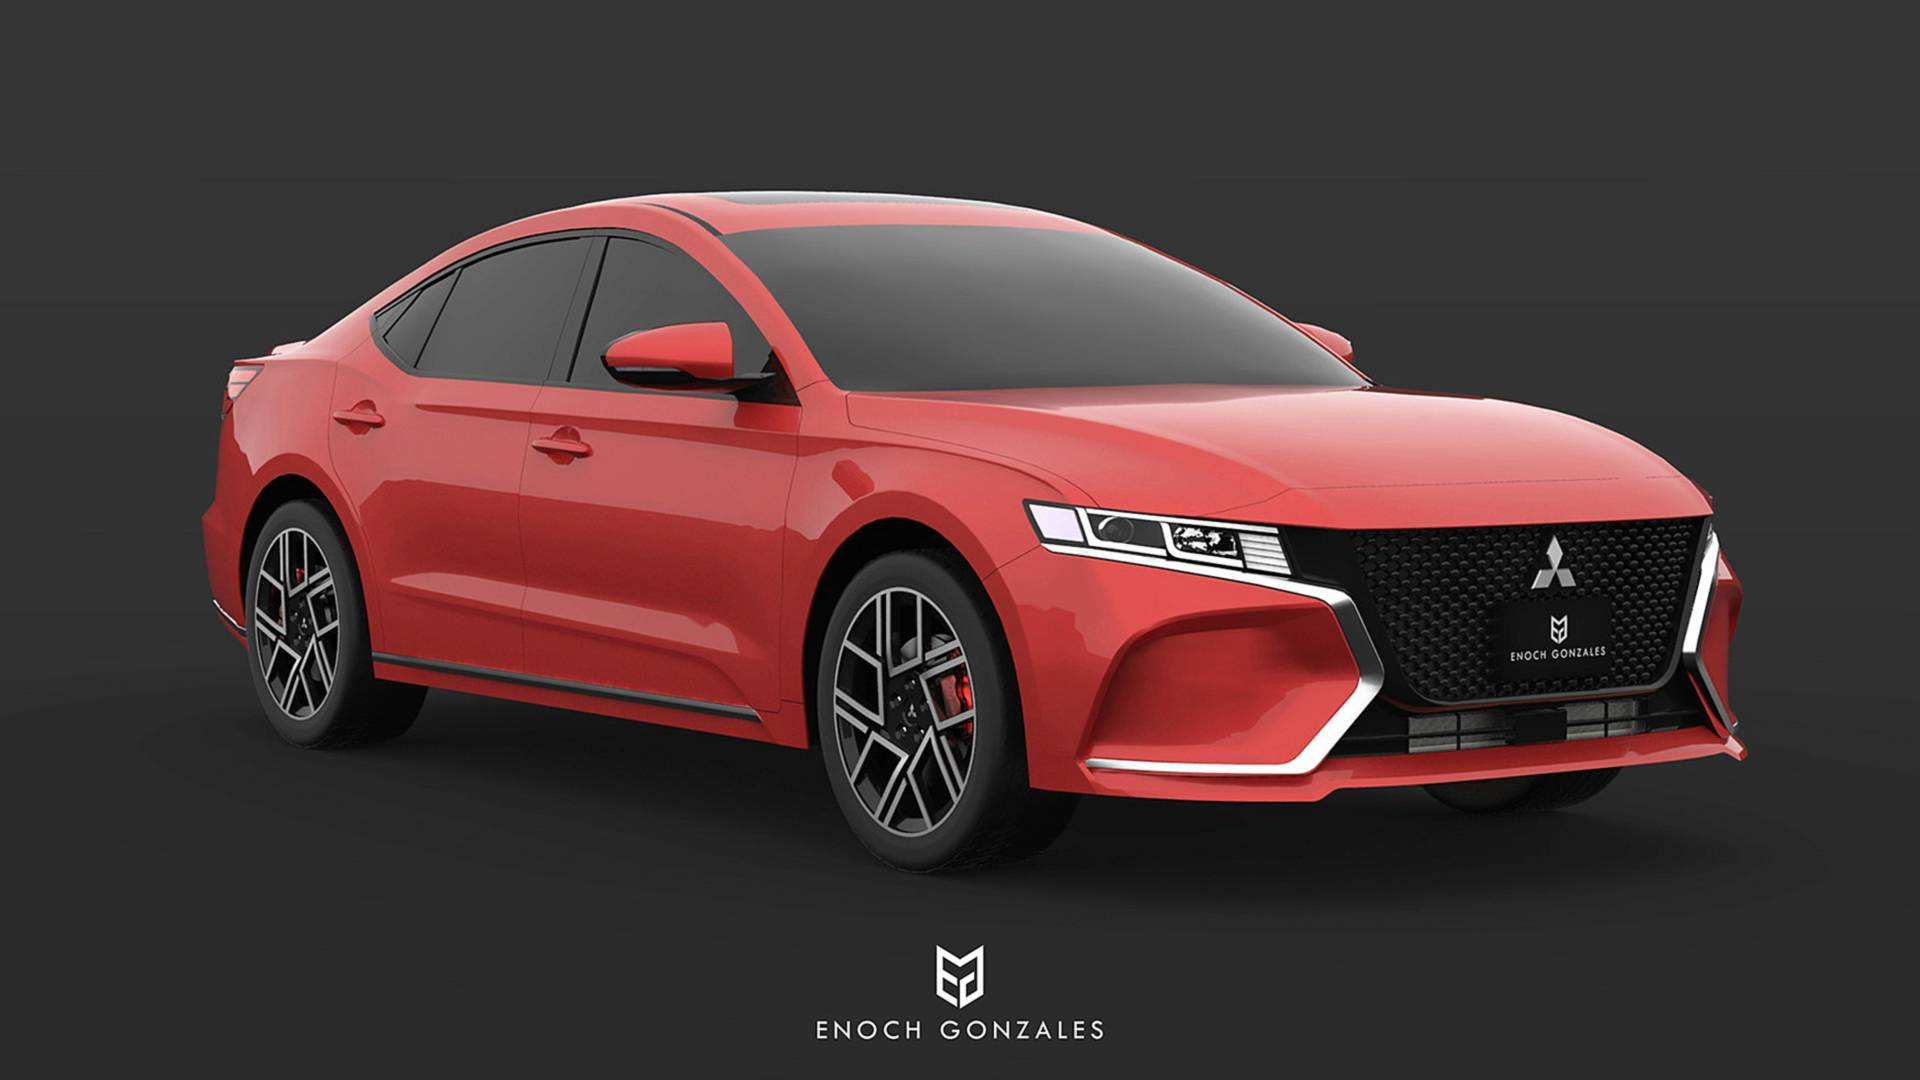 81 The Mitsubishi Galant 2020 Release Date And Concept